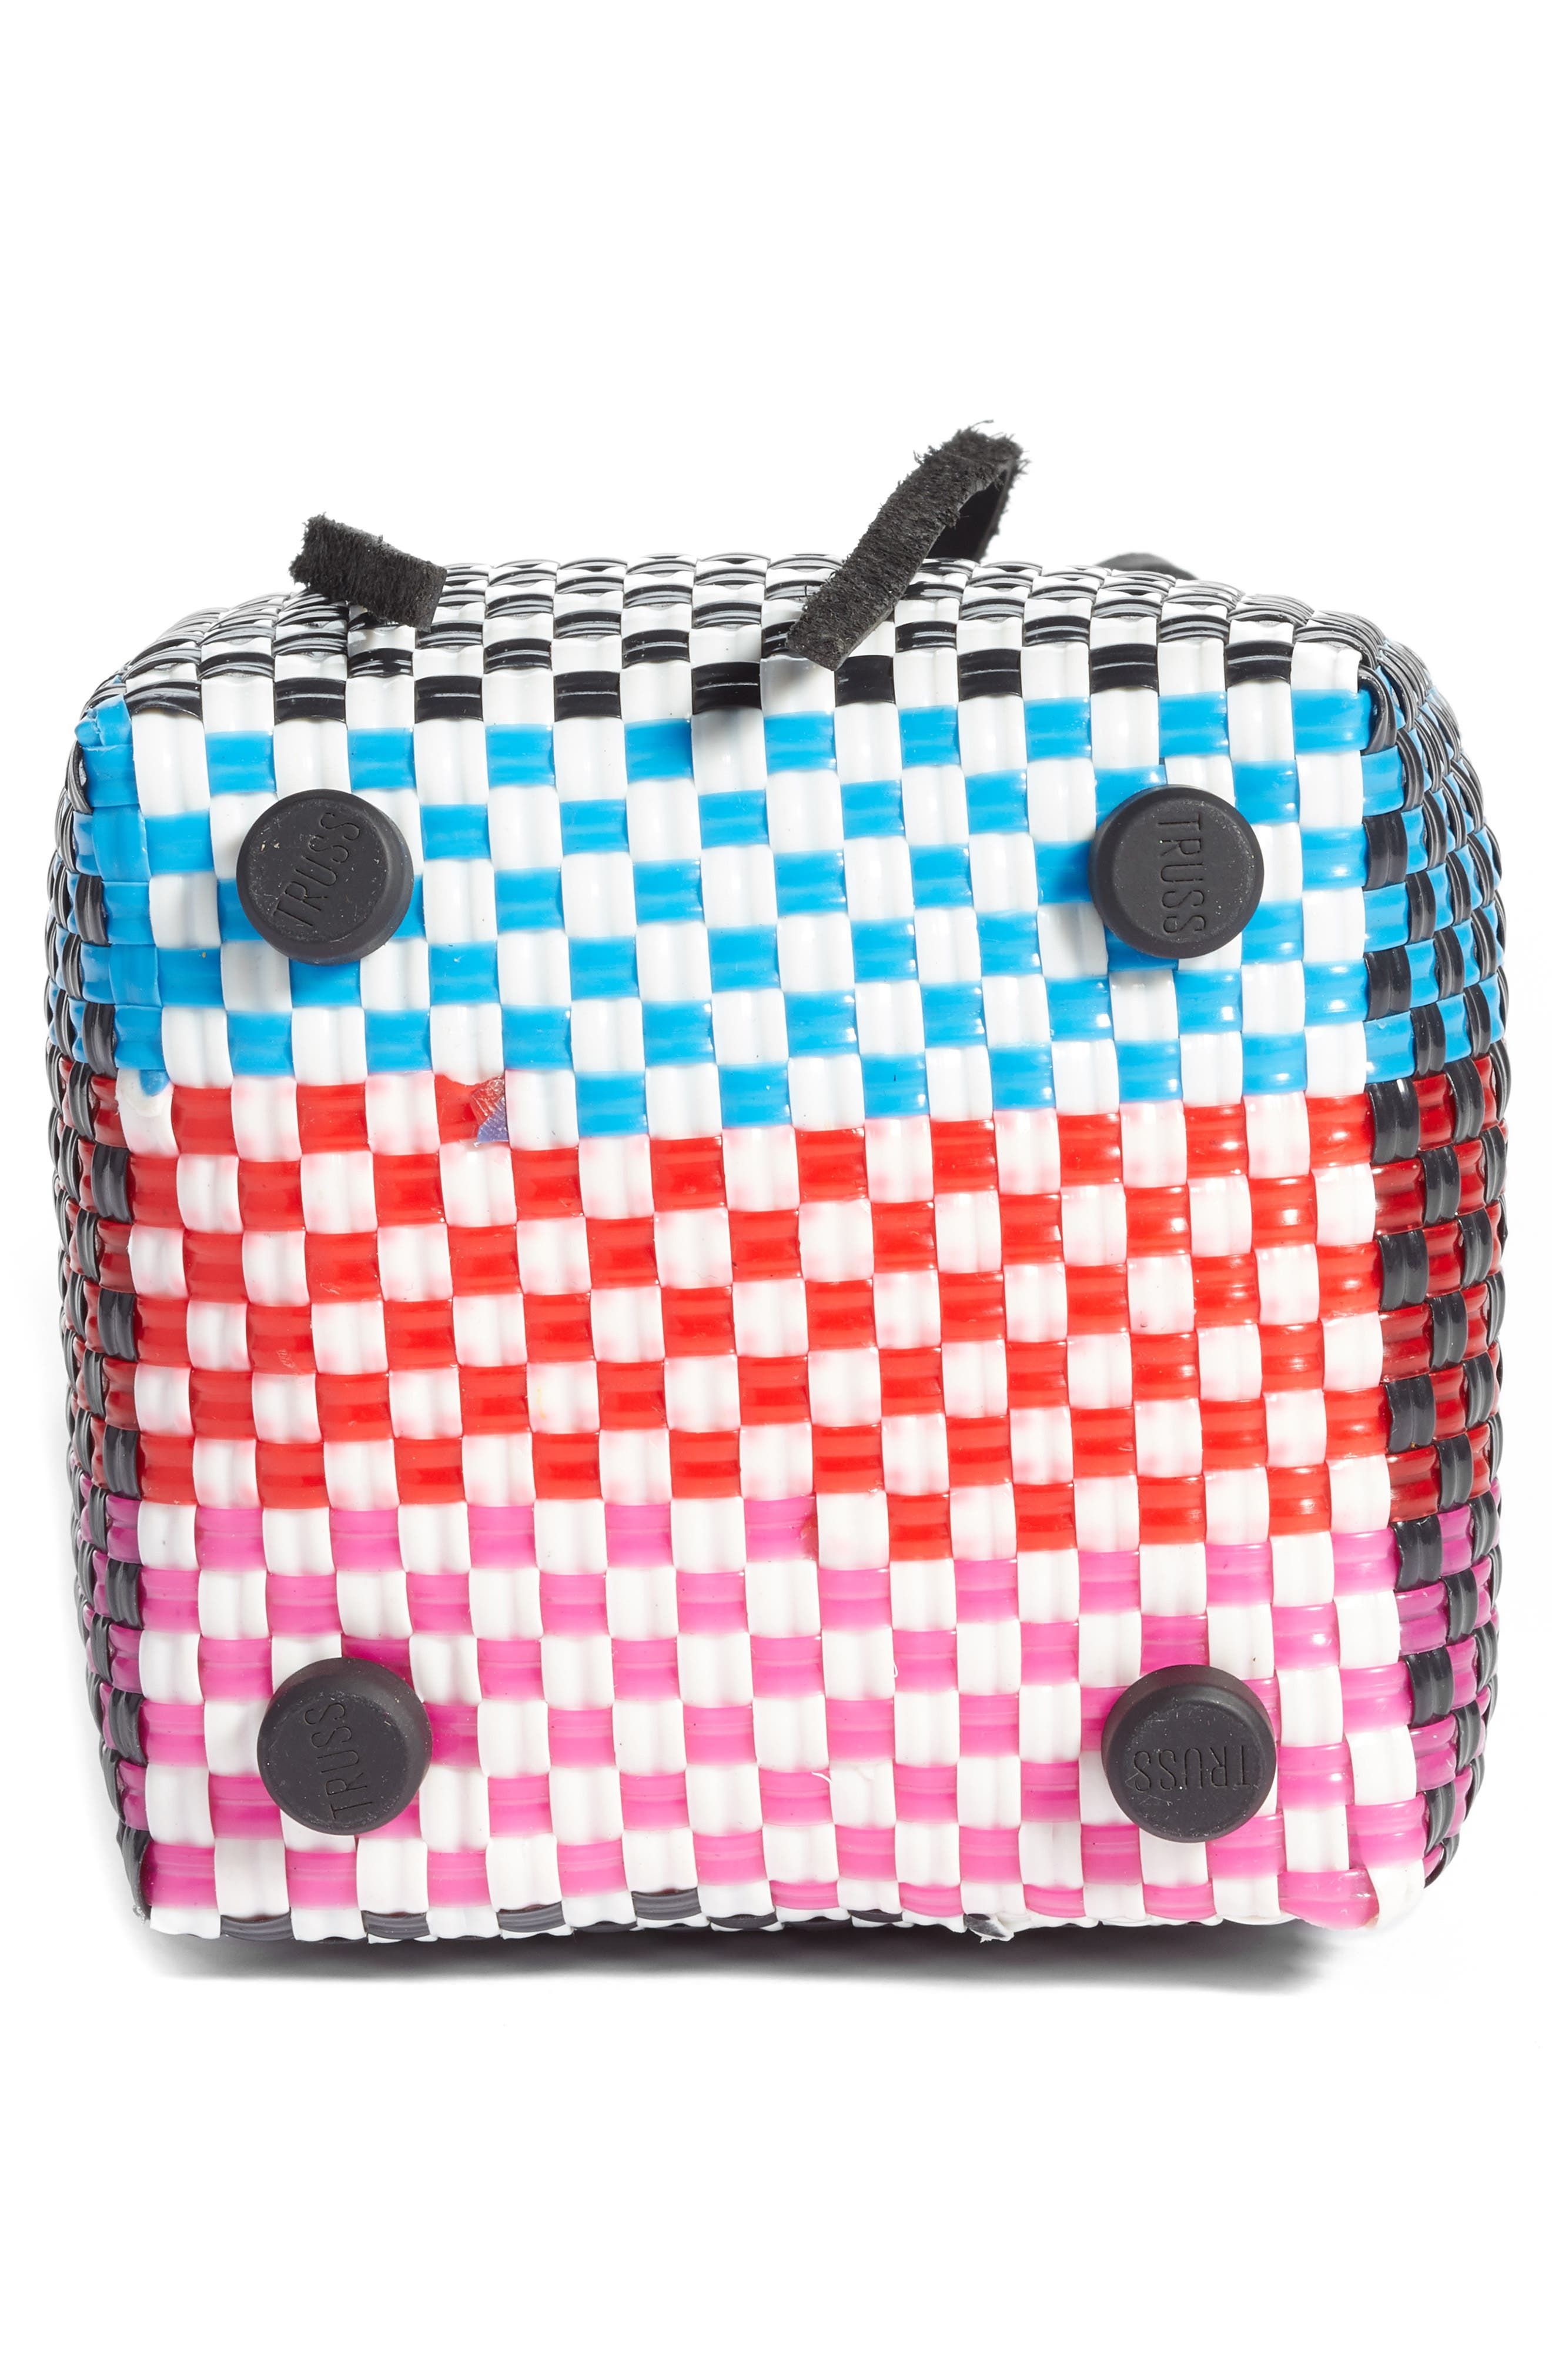 Party Woven Bucket Bag,                             Alternate thumbnail 6, color,                             FUCHSIA/ RED